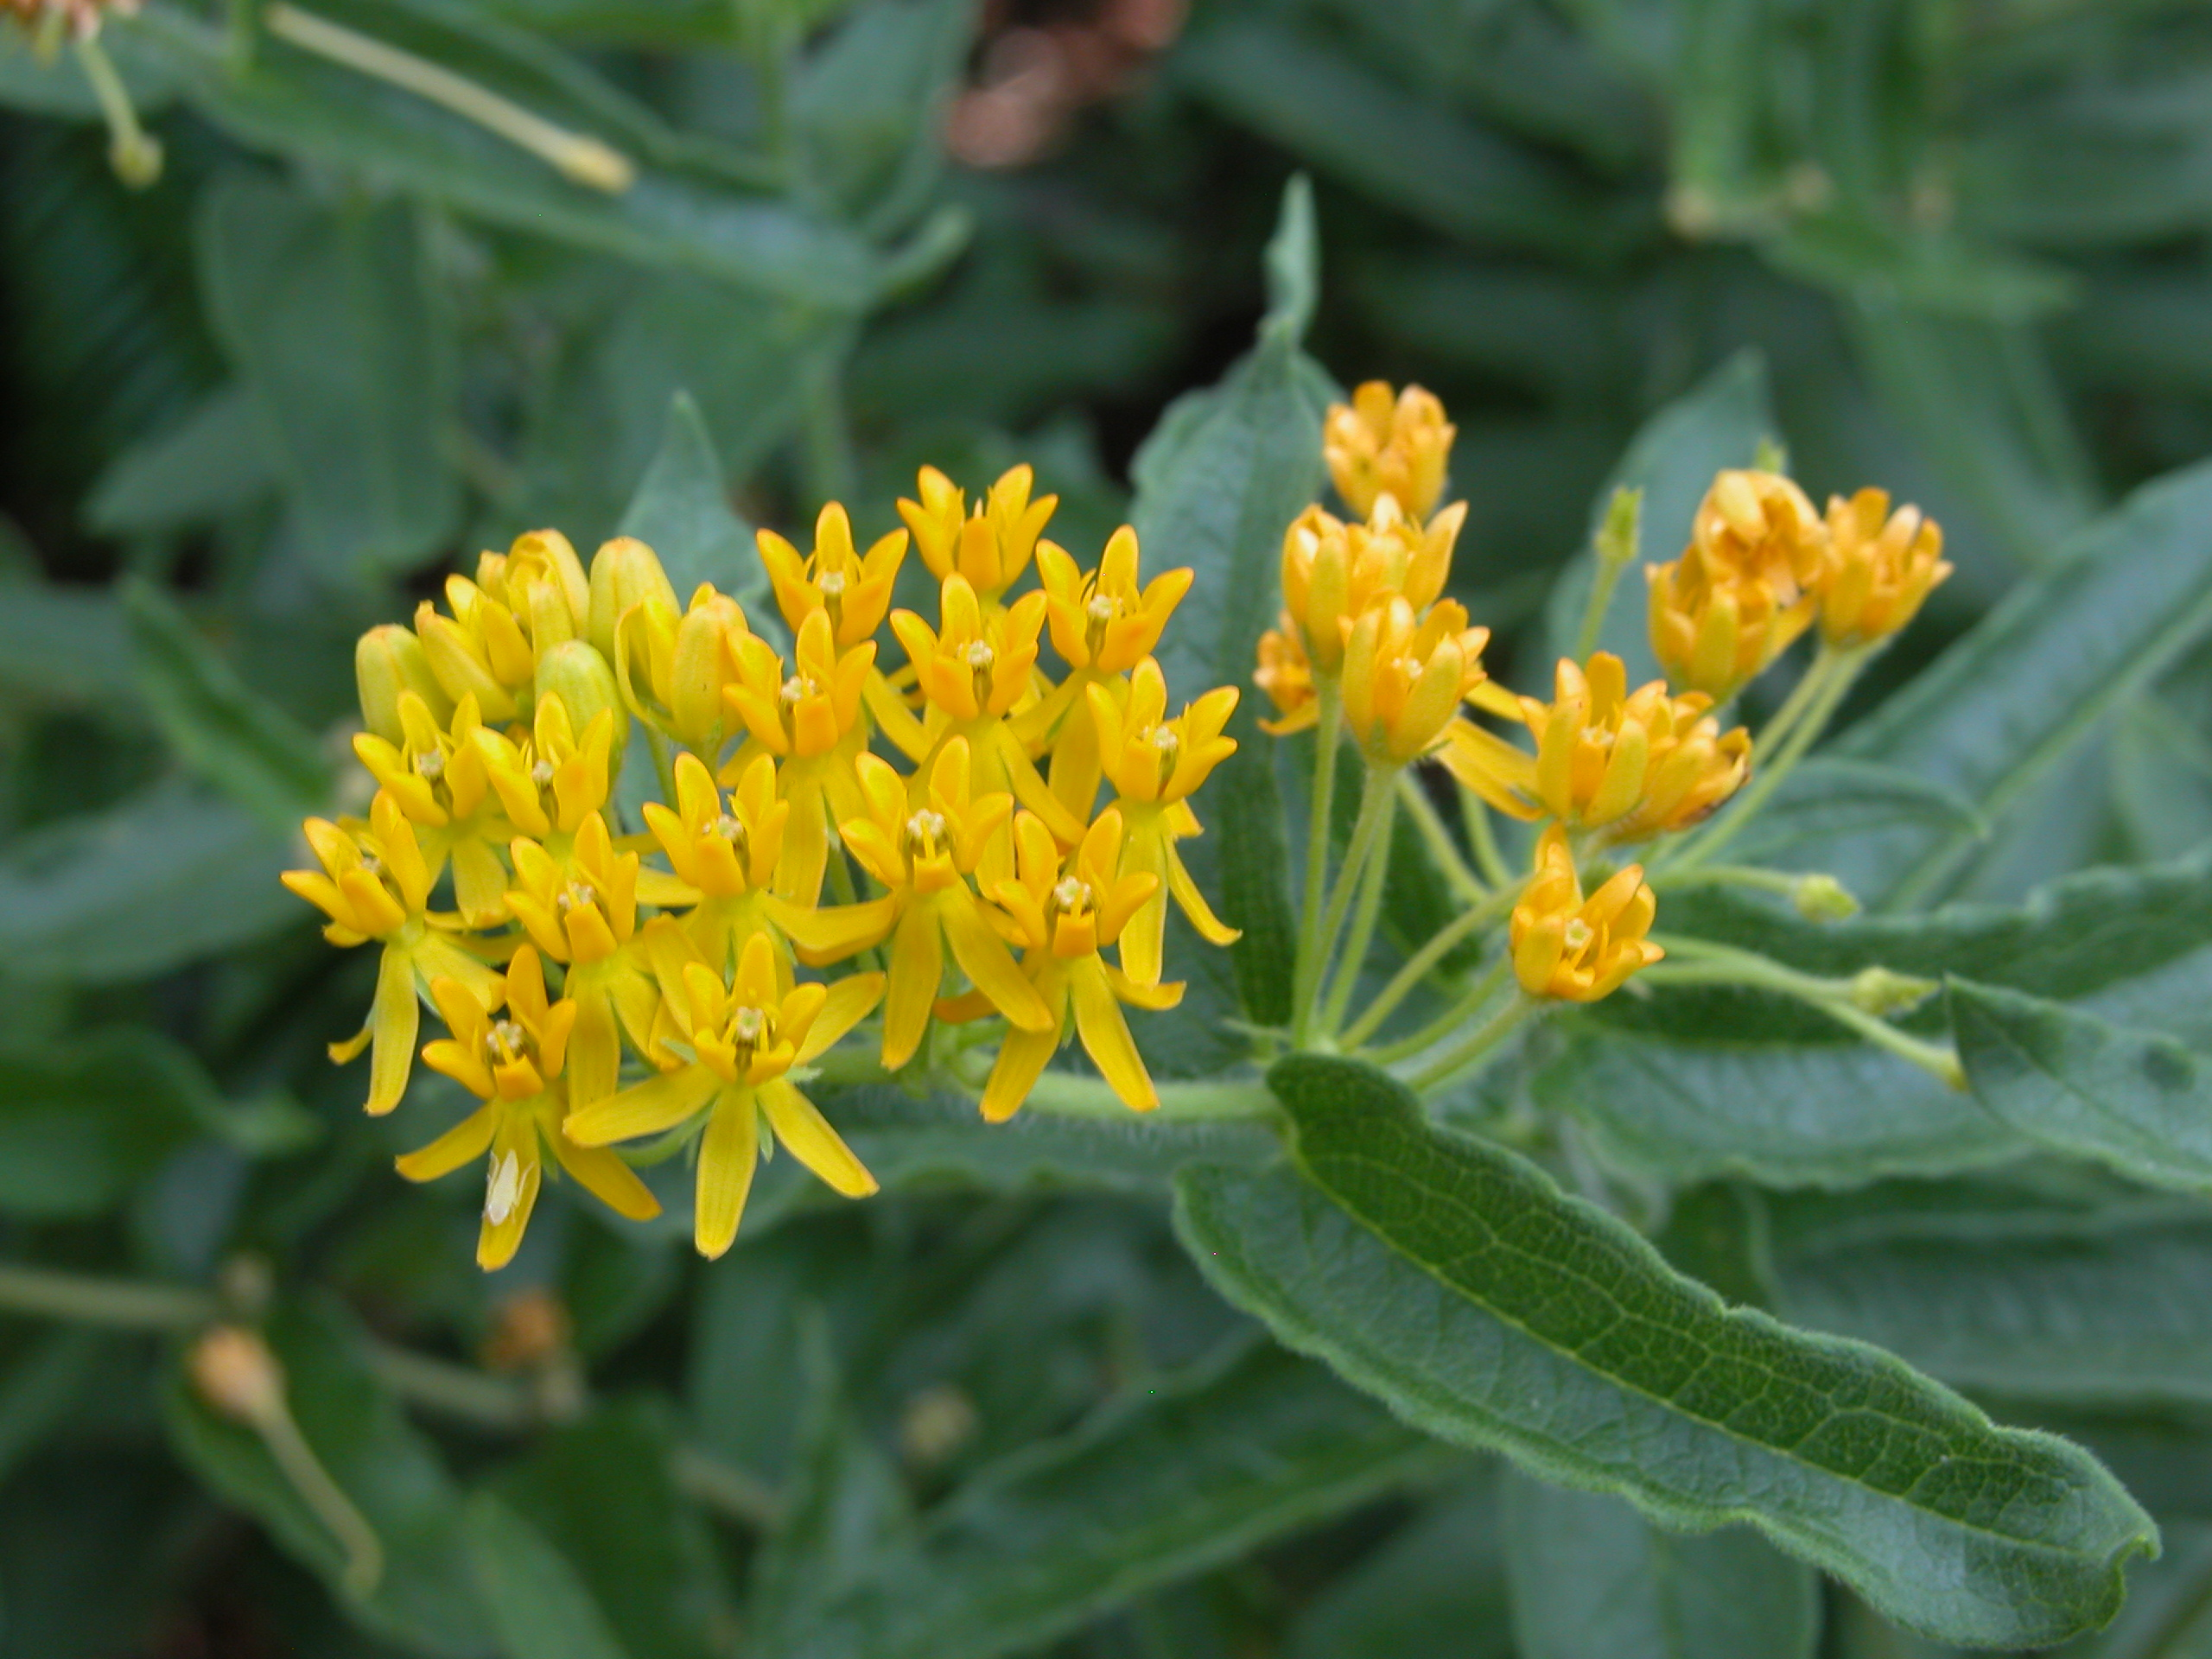 ASCLEPIAS TUBEROSA (YELLOW FORM)